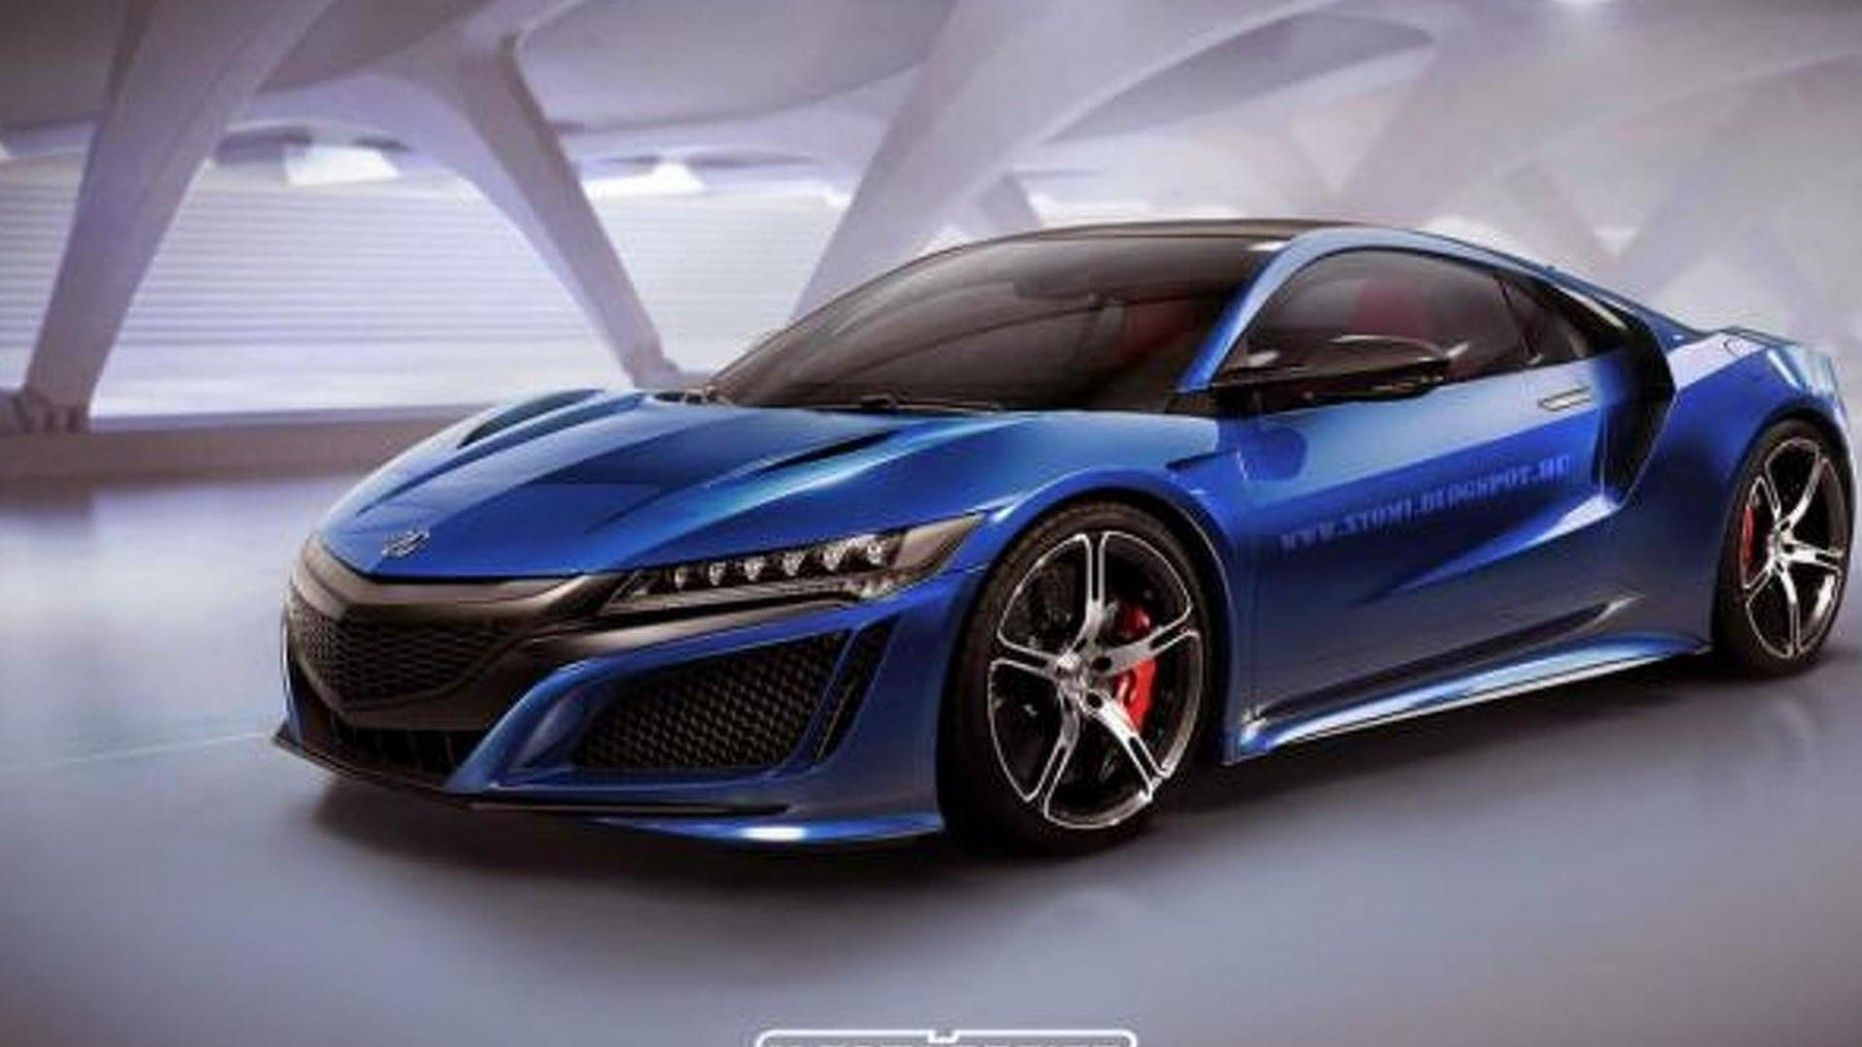 It isn't accepted yet if a Type R would stick with Super